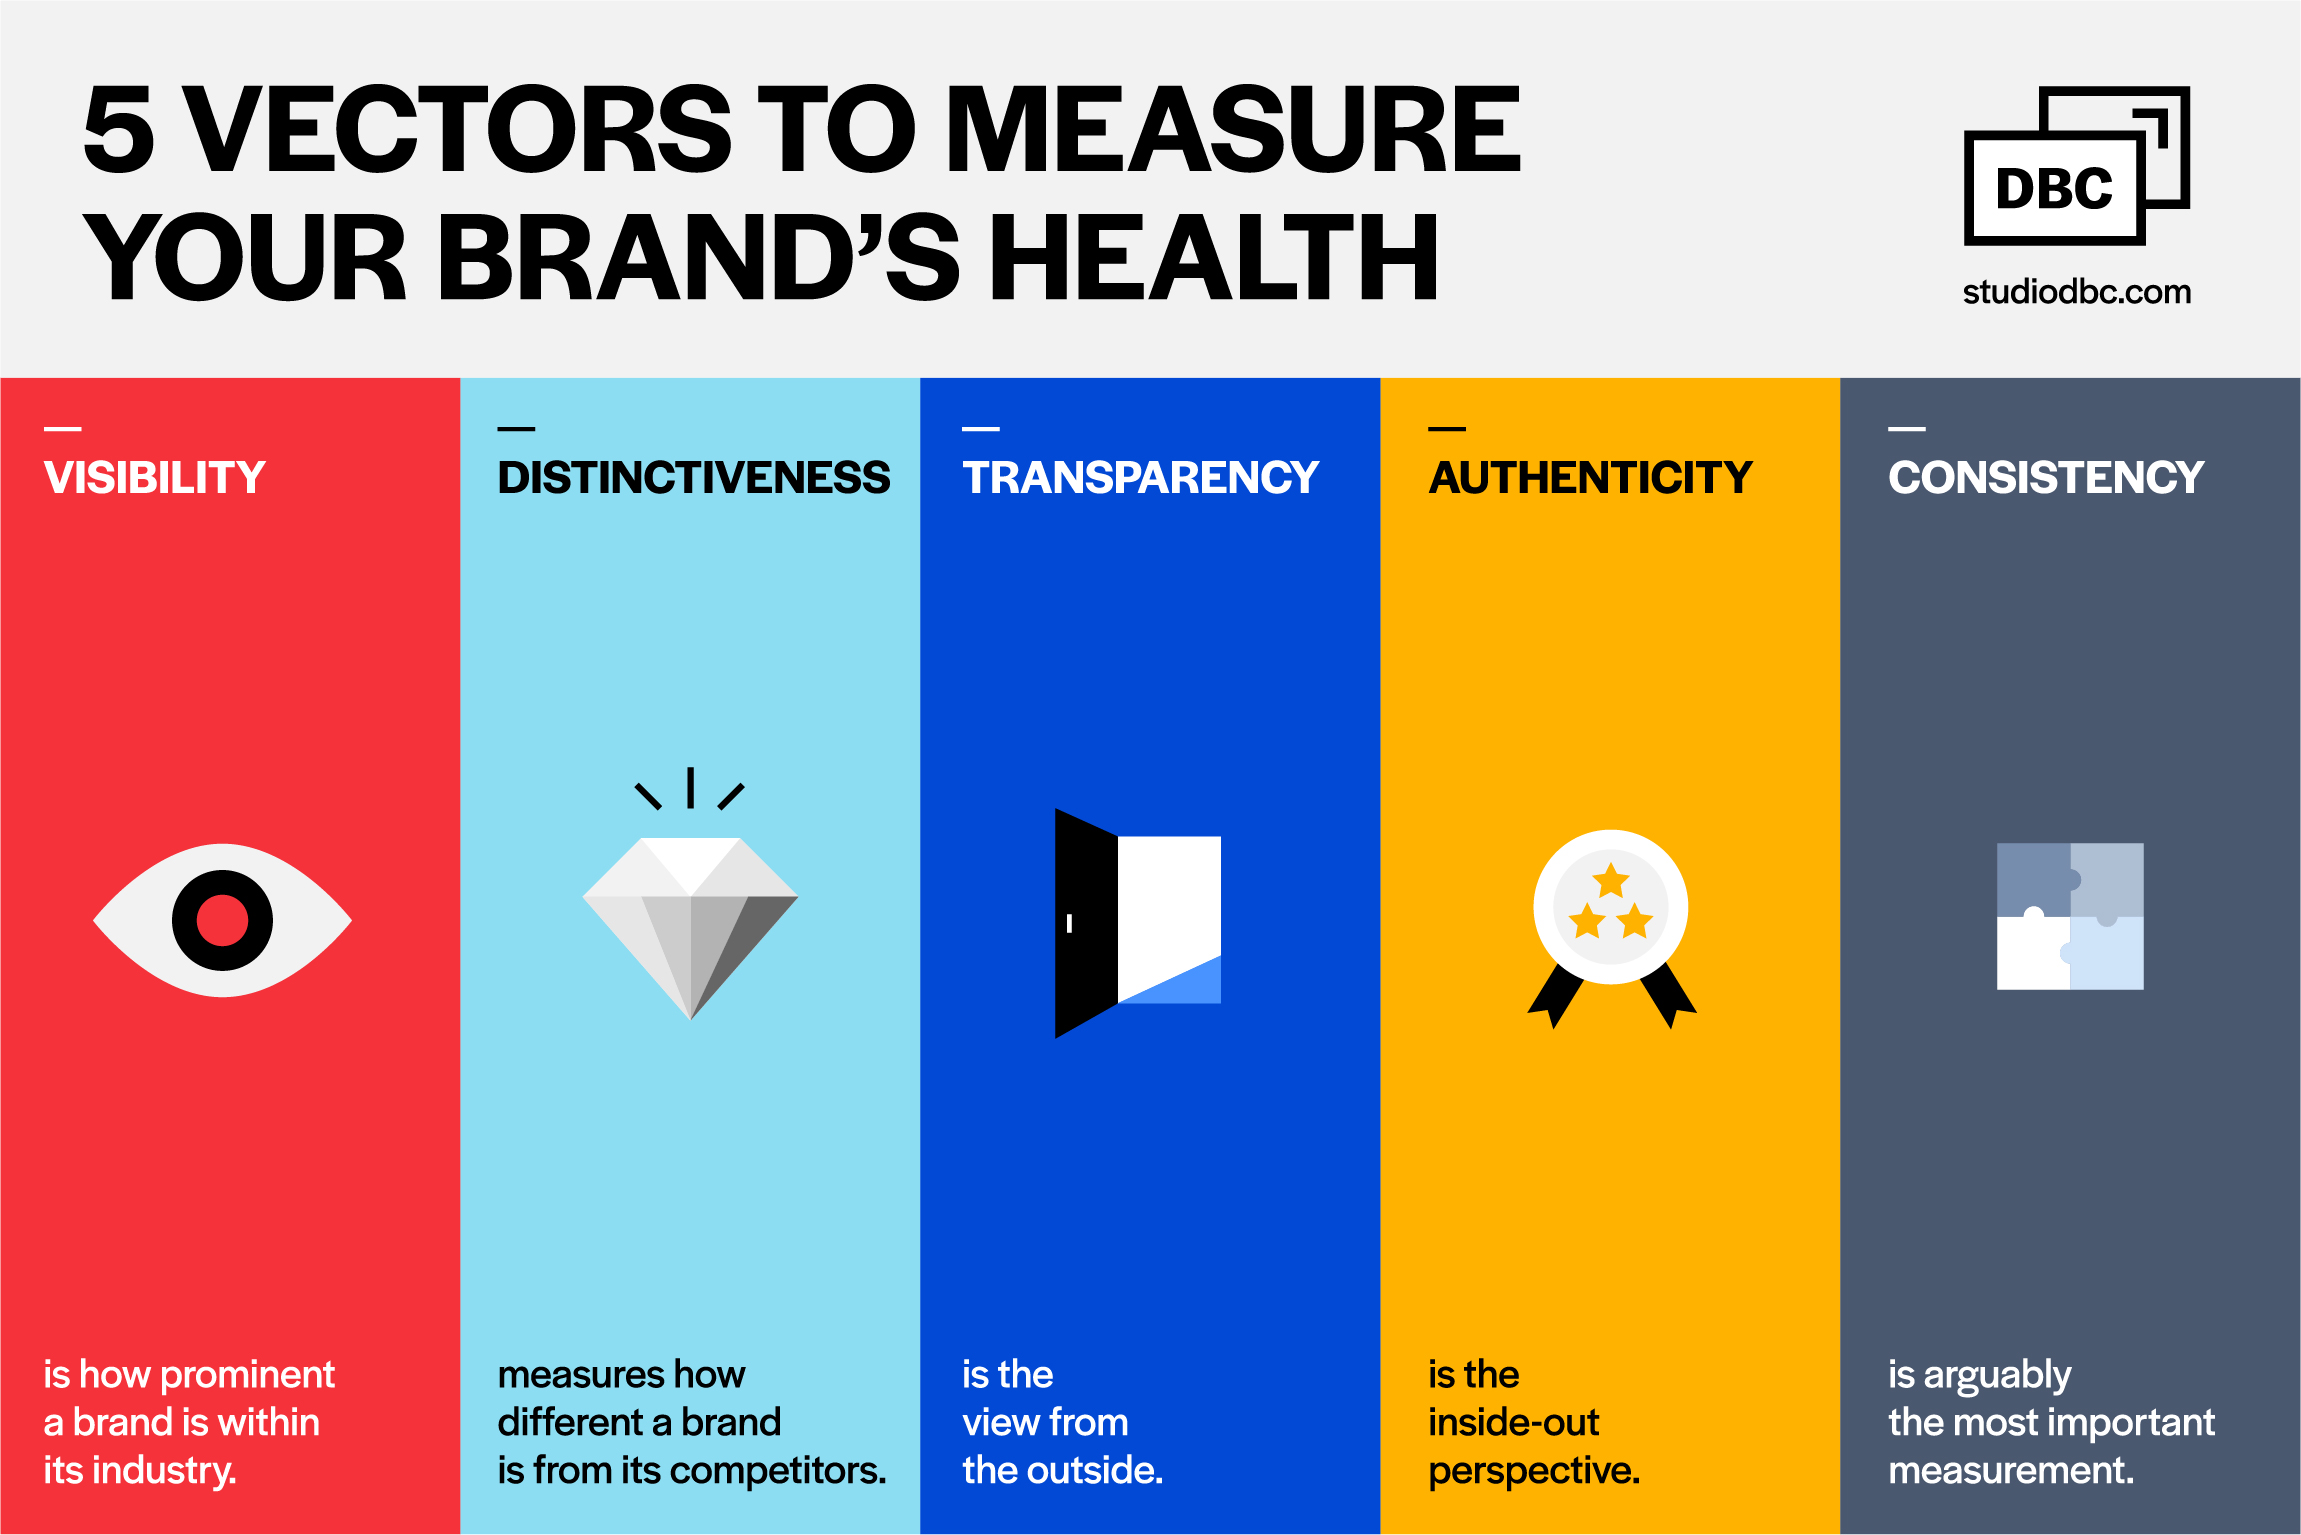 5 vectors to measure your brand's health